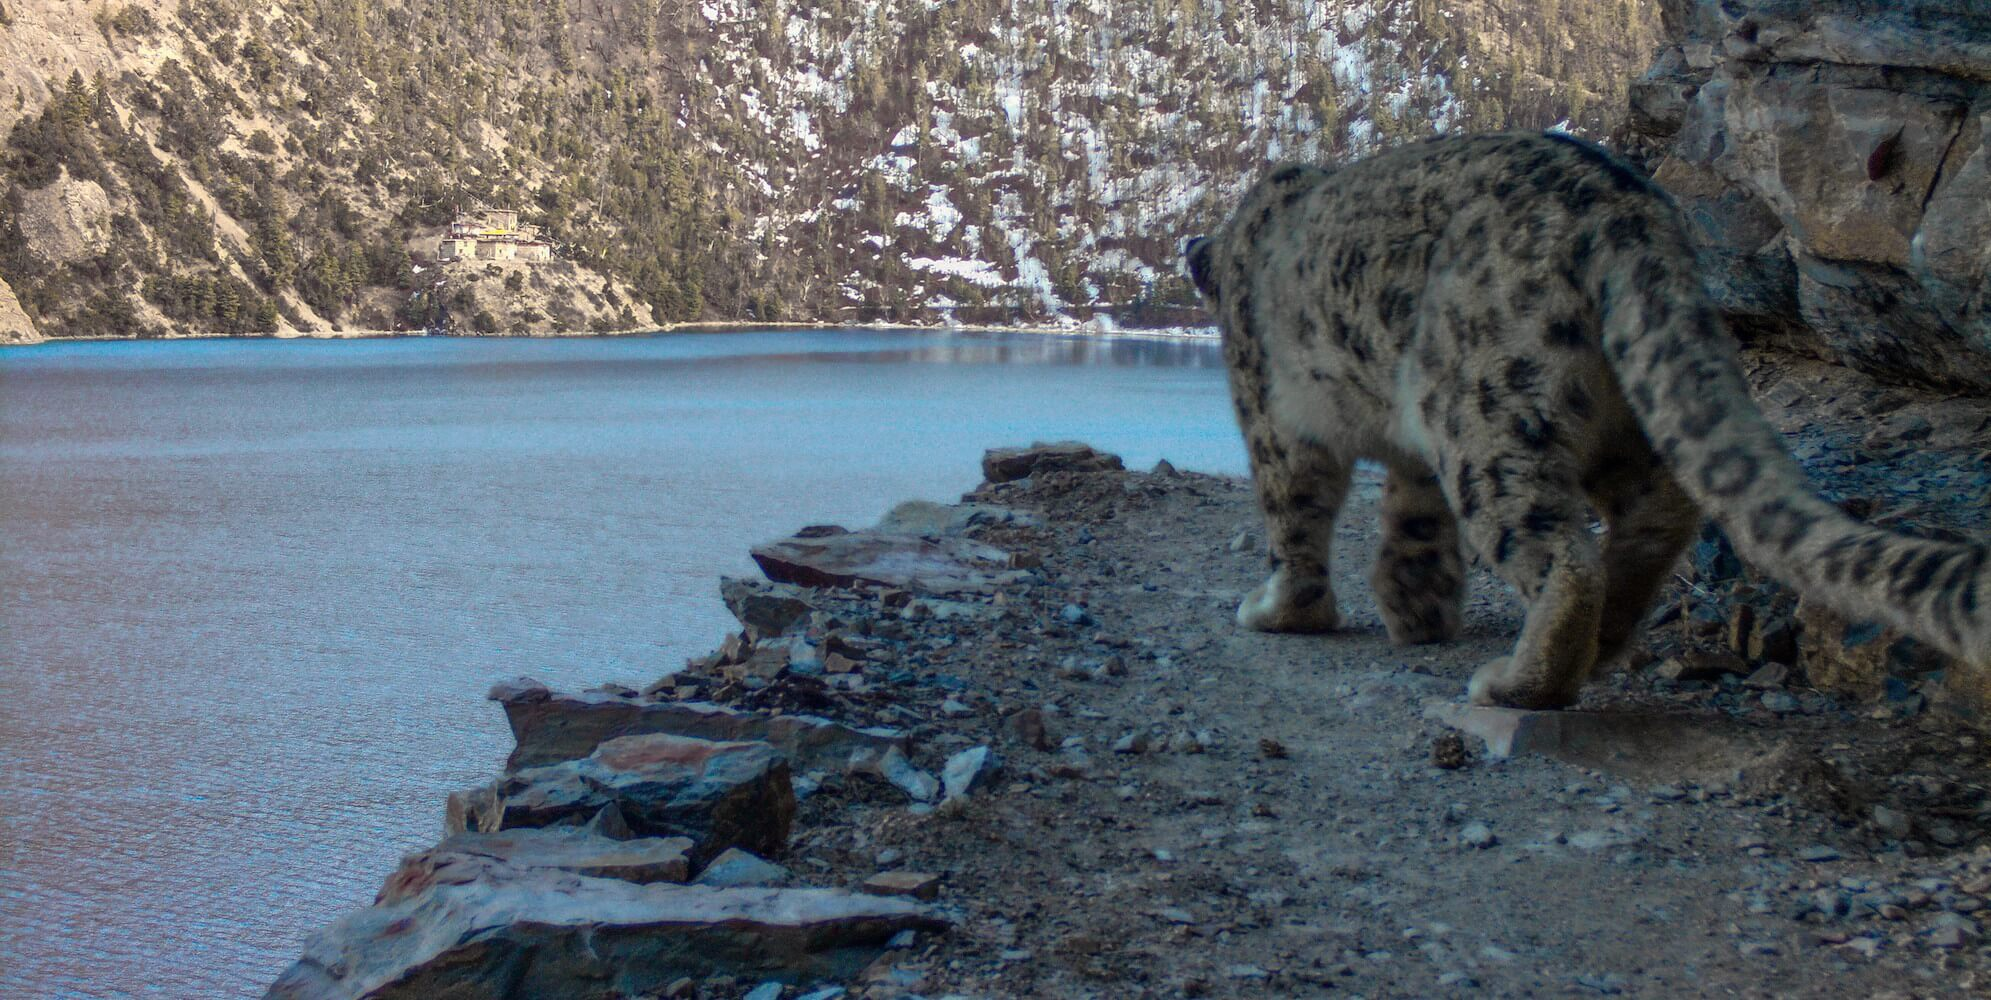 Trekking to save Nepal's snow leopards